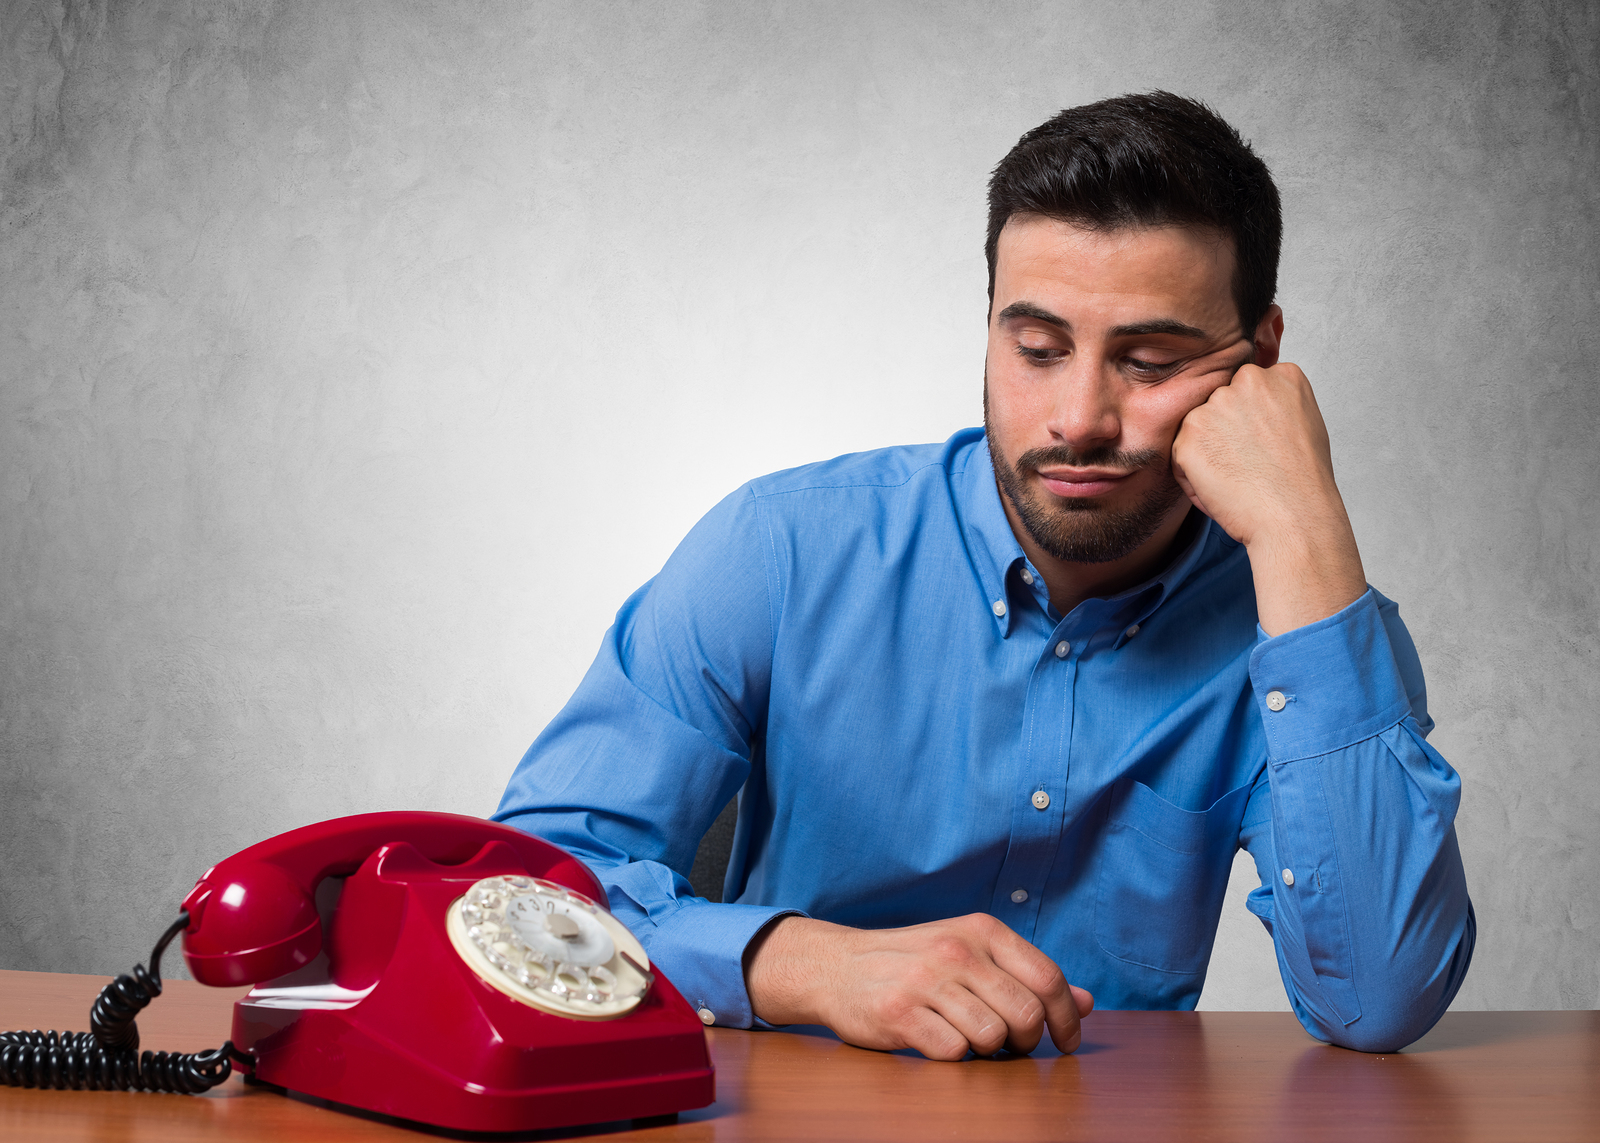 Man waiting for a call to come through on an old, red, rotary phone.